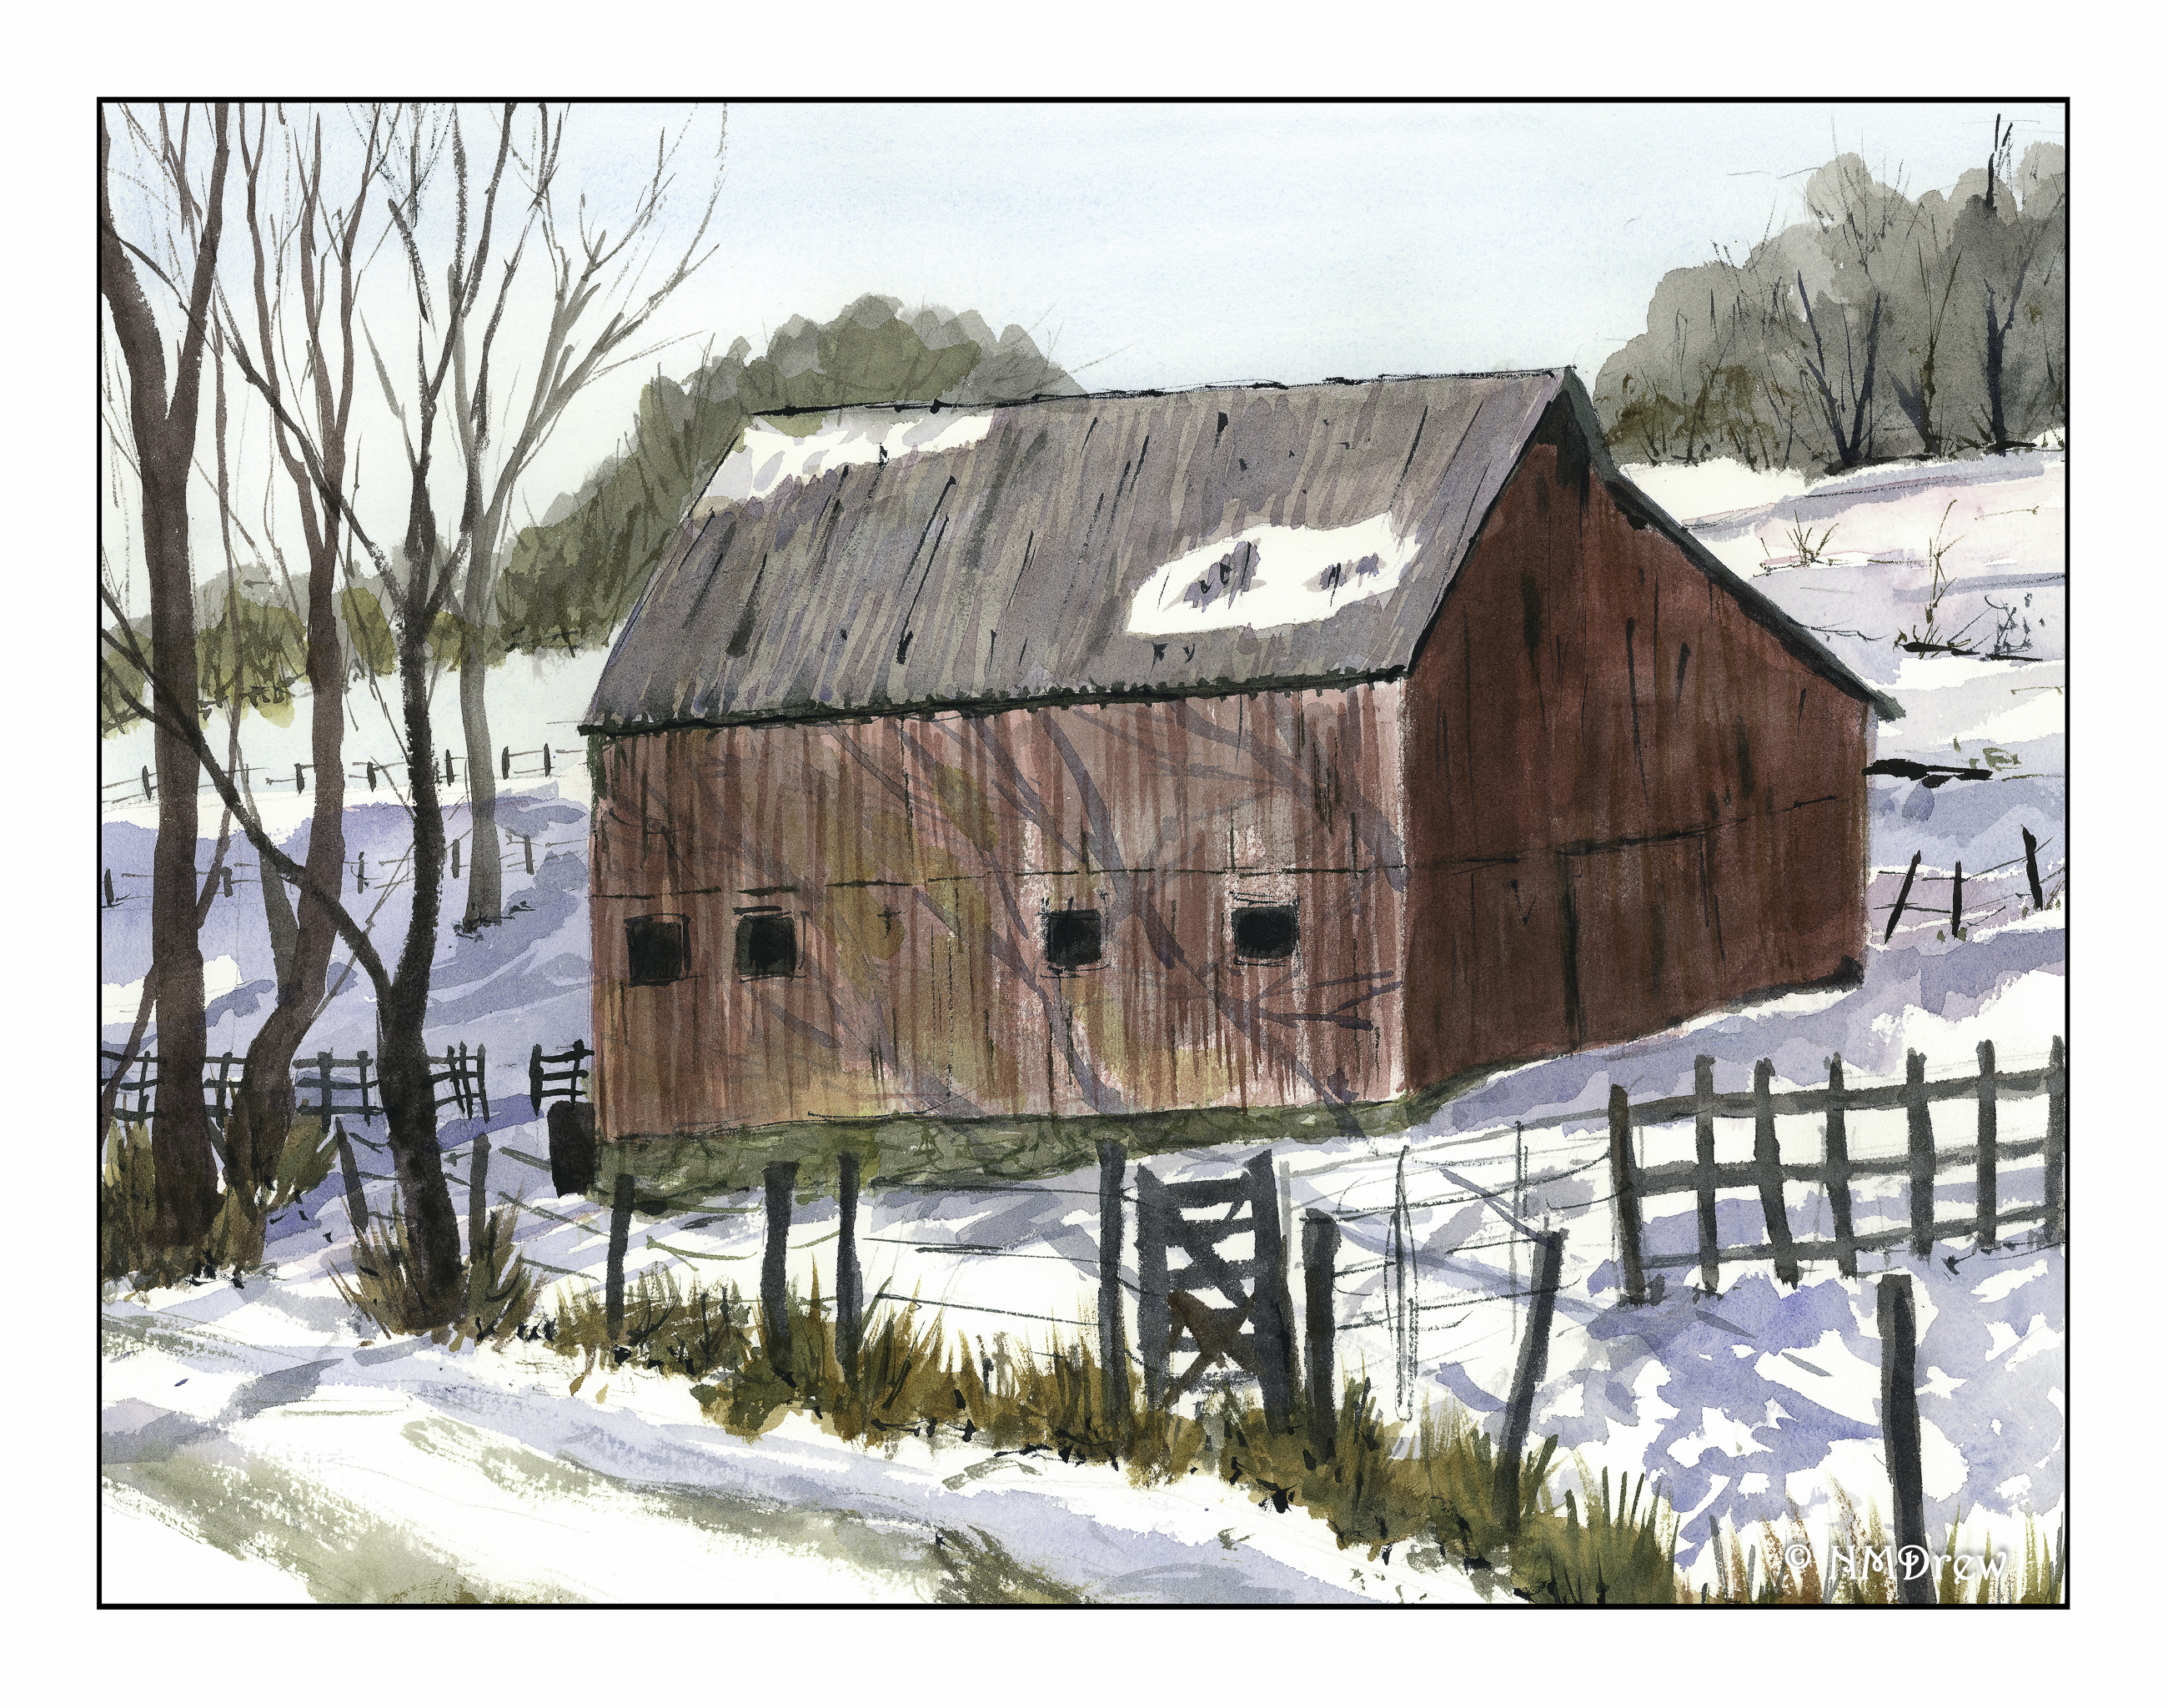 The Red Barn: A Matter of Perspective – Journey by Paper